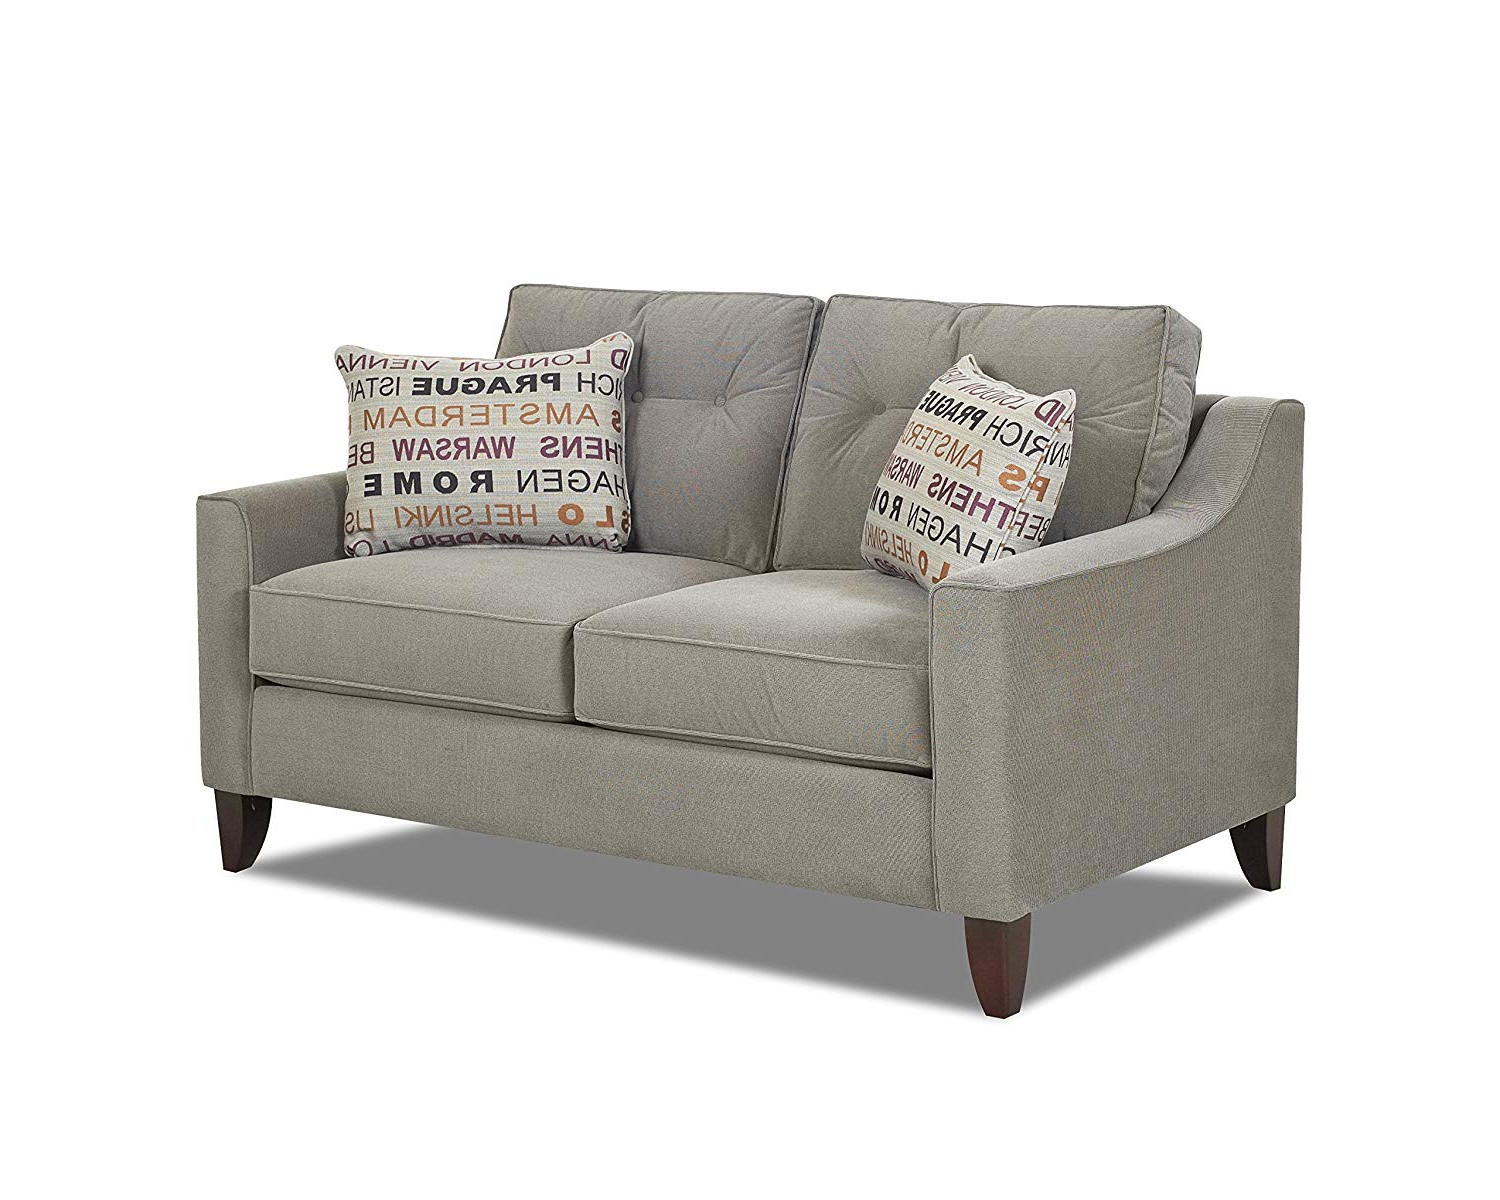 Amazon: Klaussner Audrina Loveseat, Gray: Kitchen & Dining With Best And Newest Transitional 8 Seating Rectangular Helsinki Dining Tables (View 3 of 30)